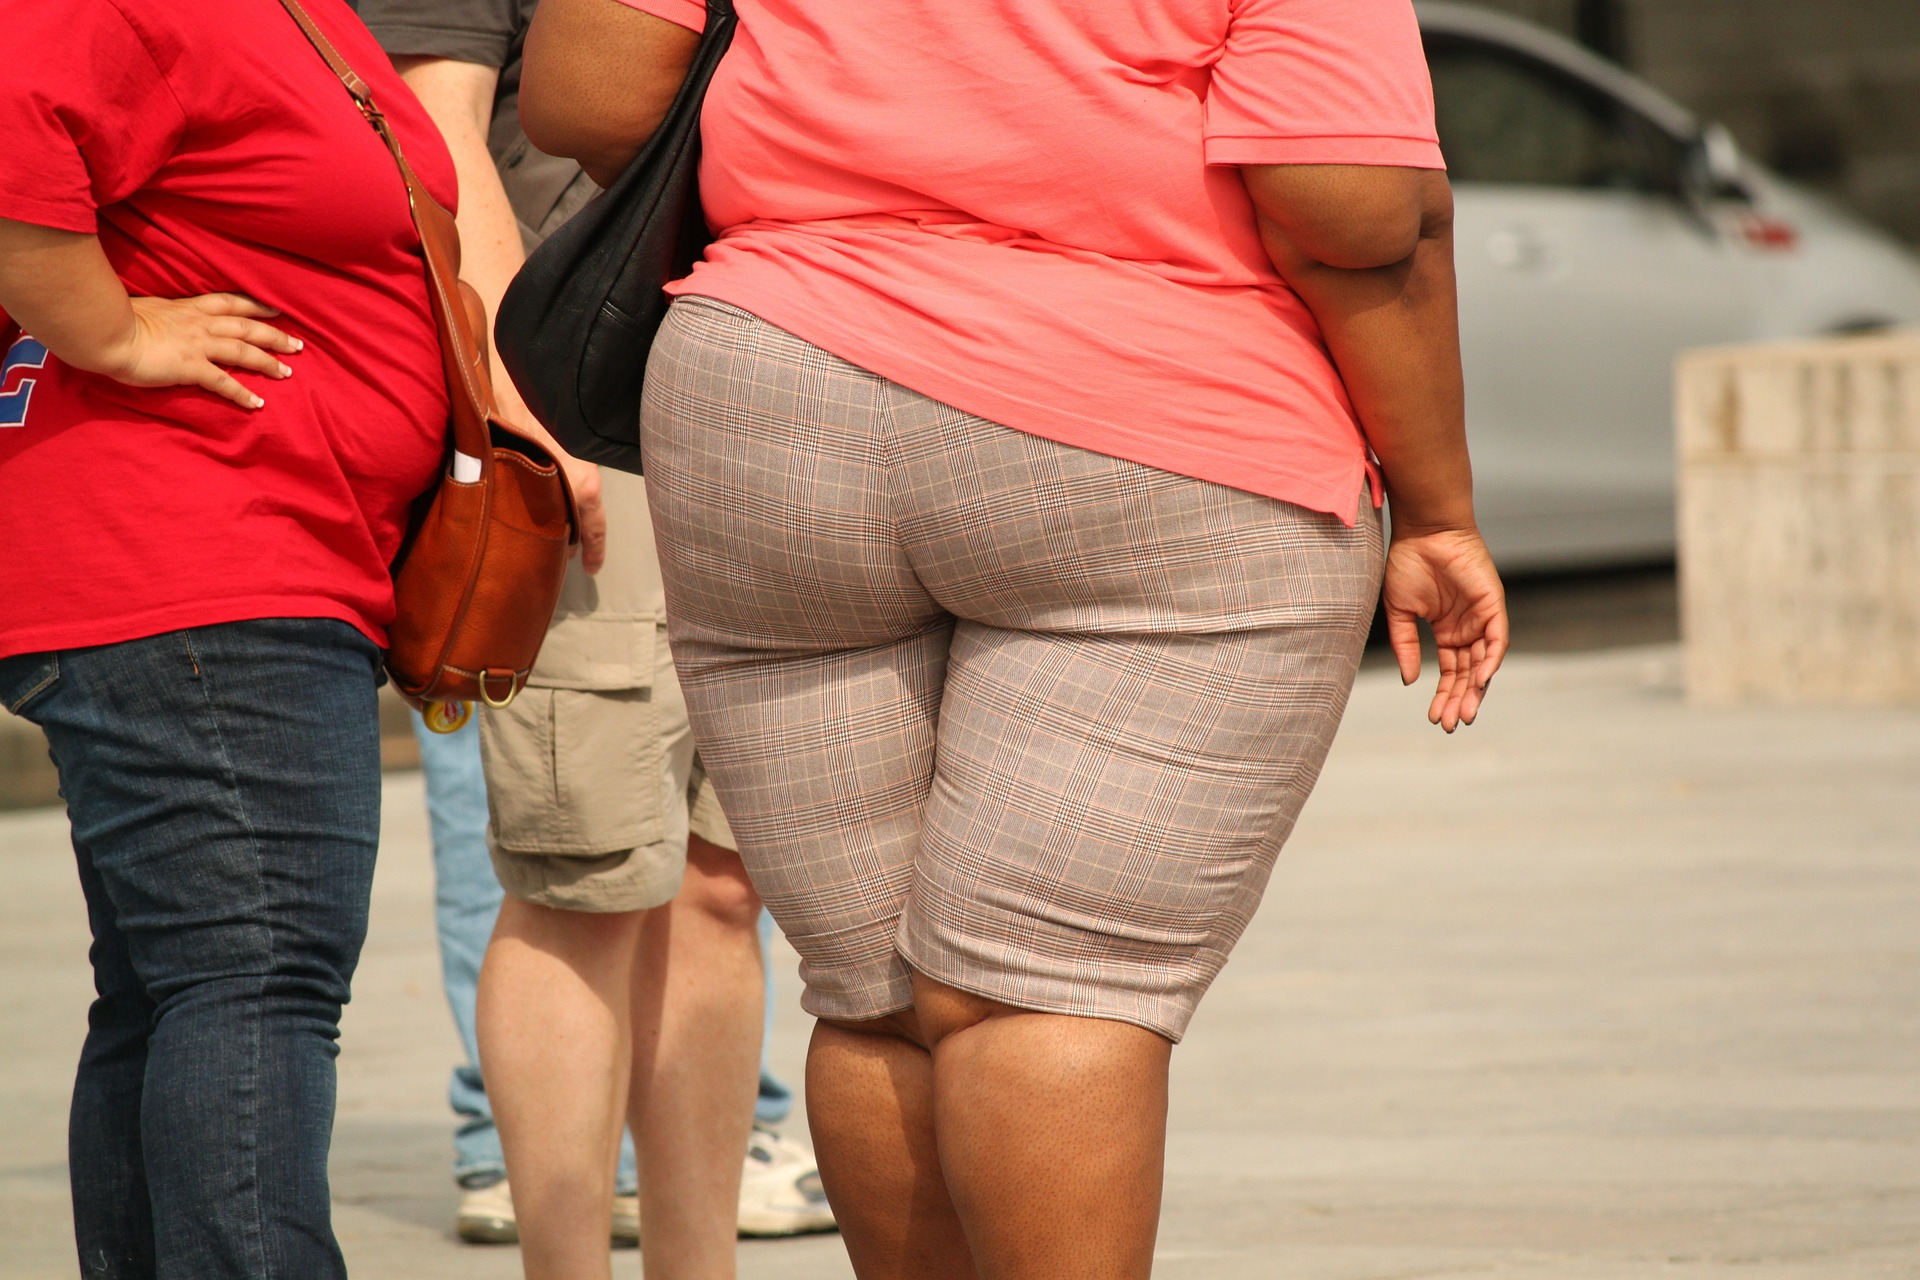 The obesity epidemic is taking over the world